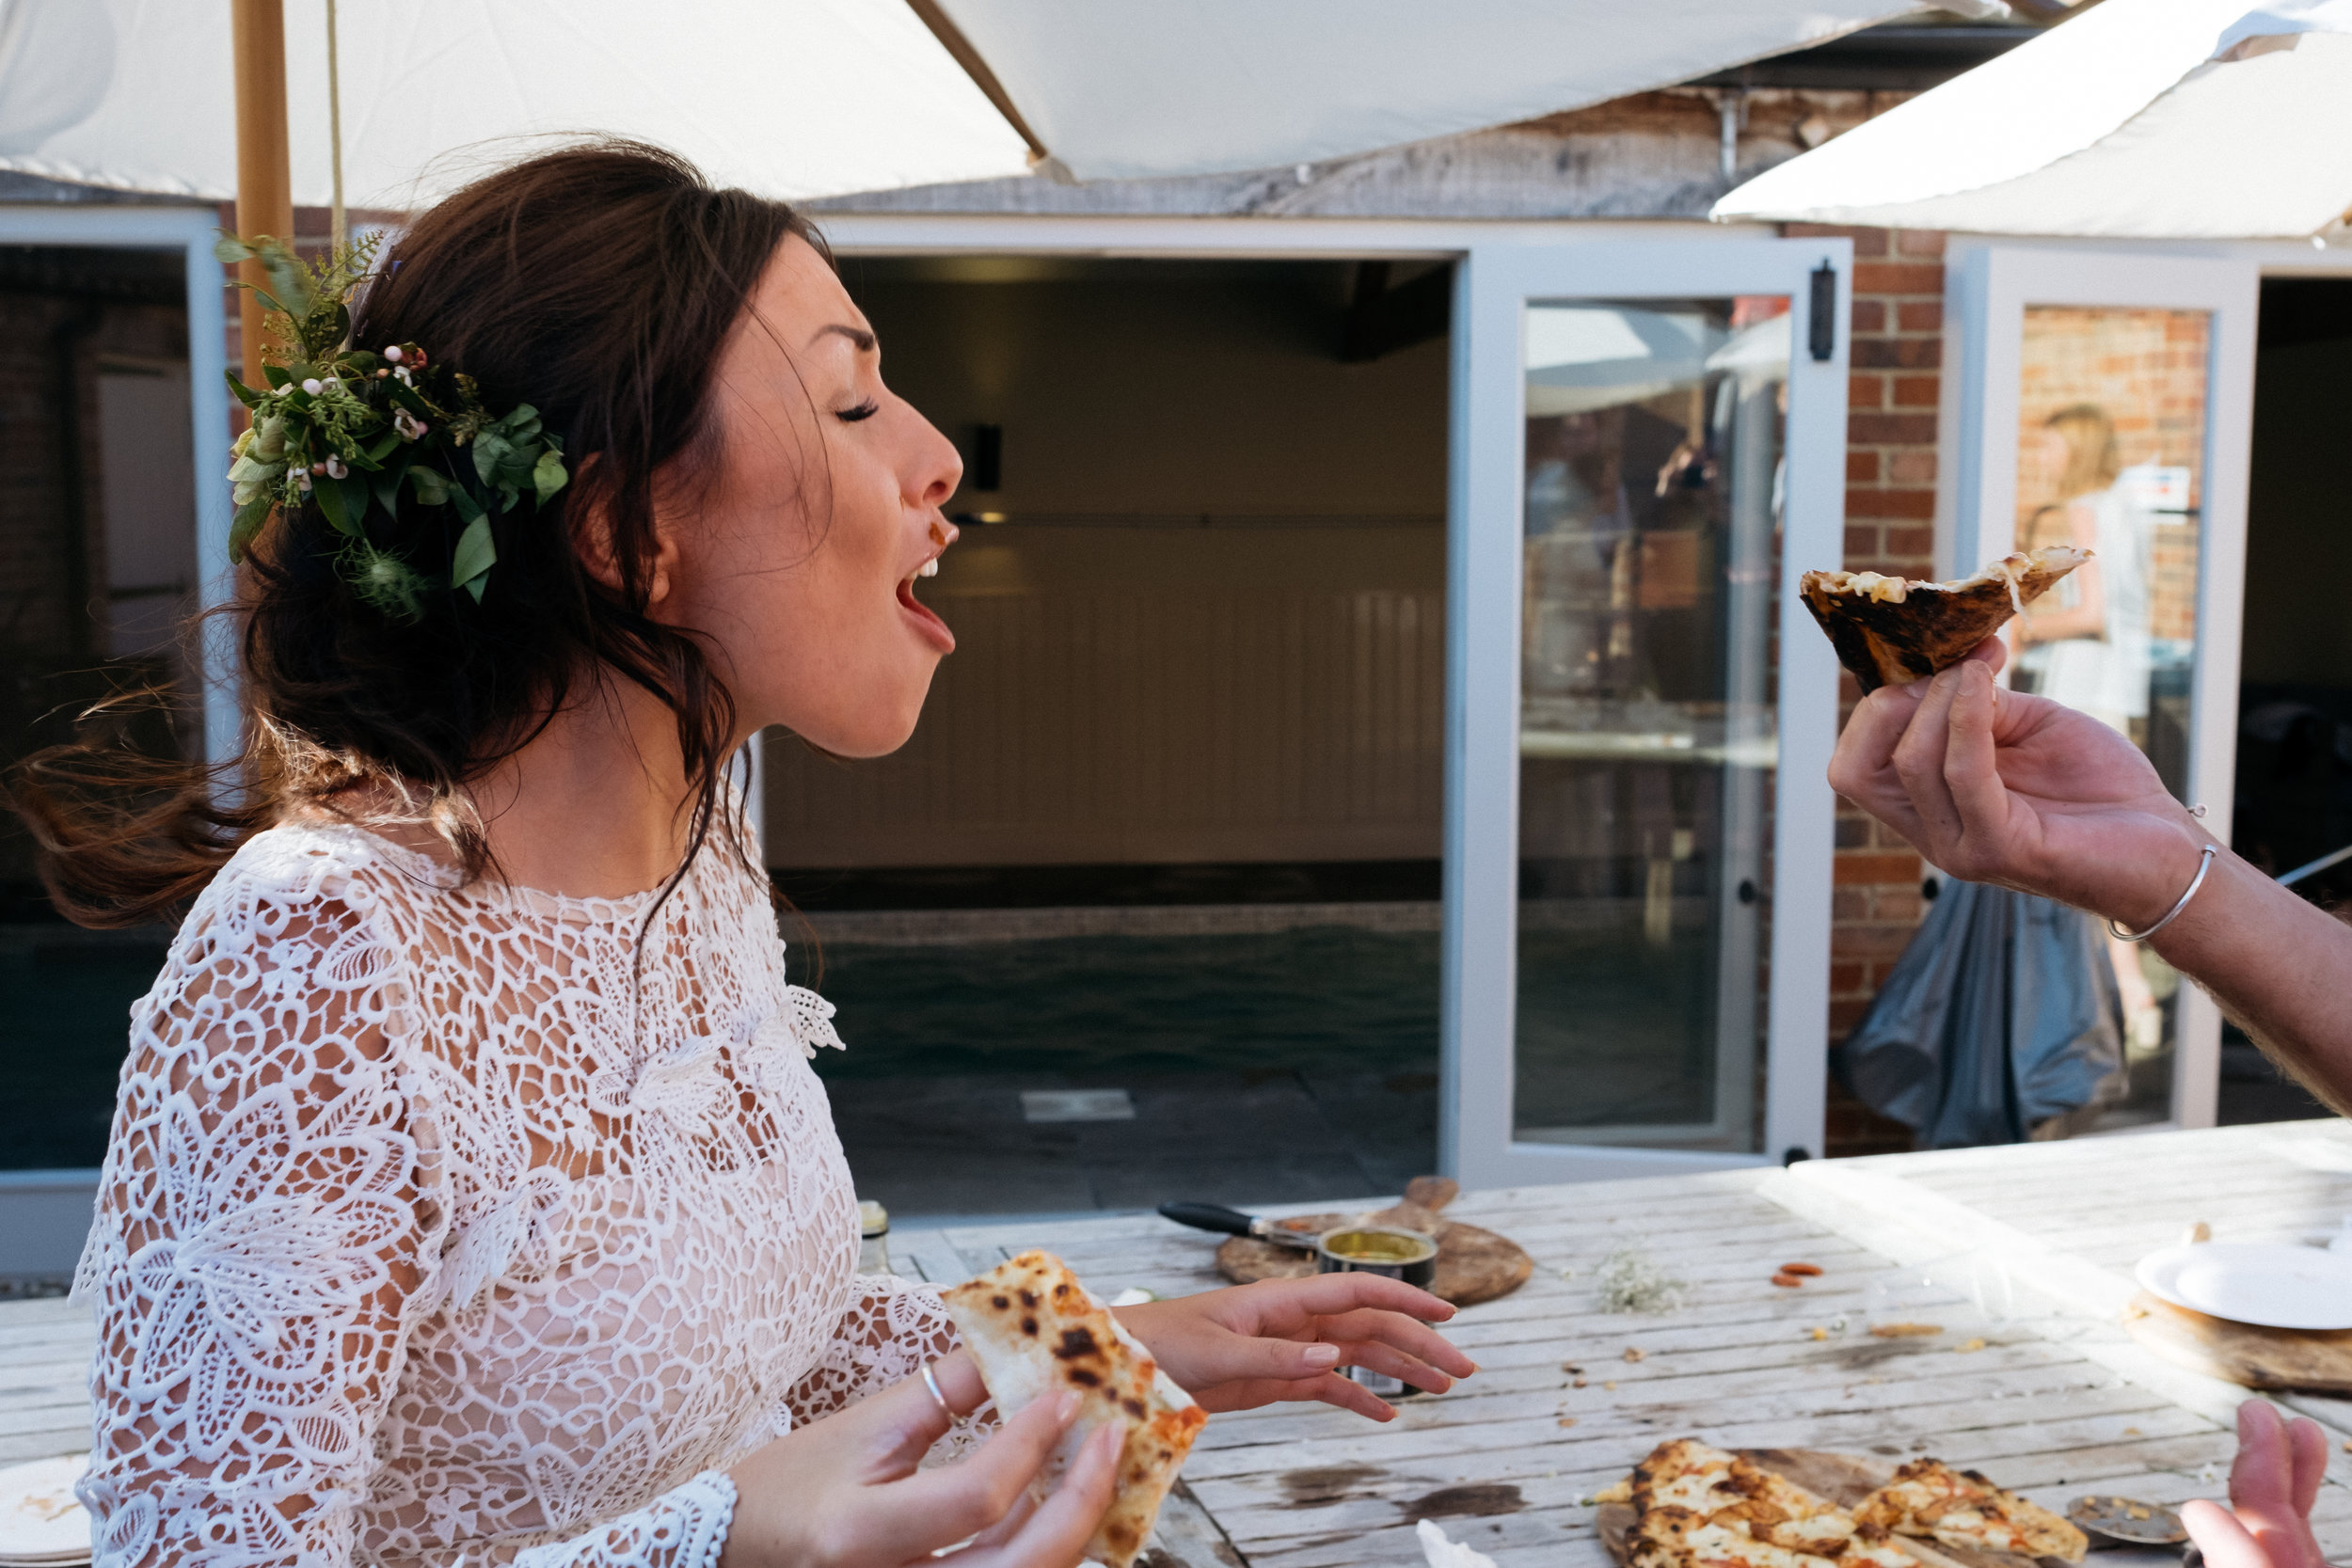 Bride reacts to having pizza smashed in her face during wedding reception